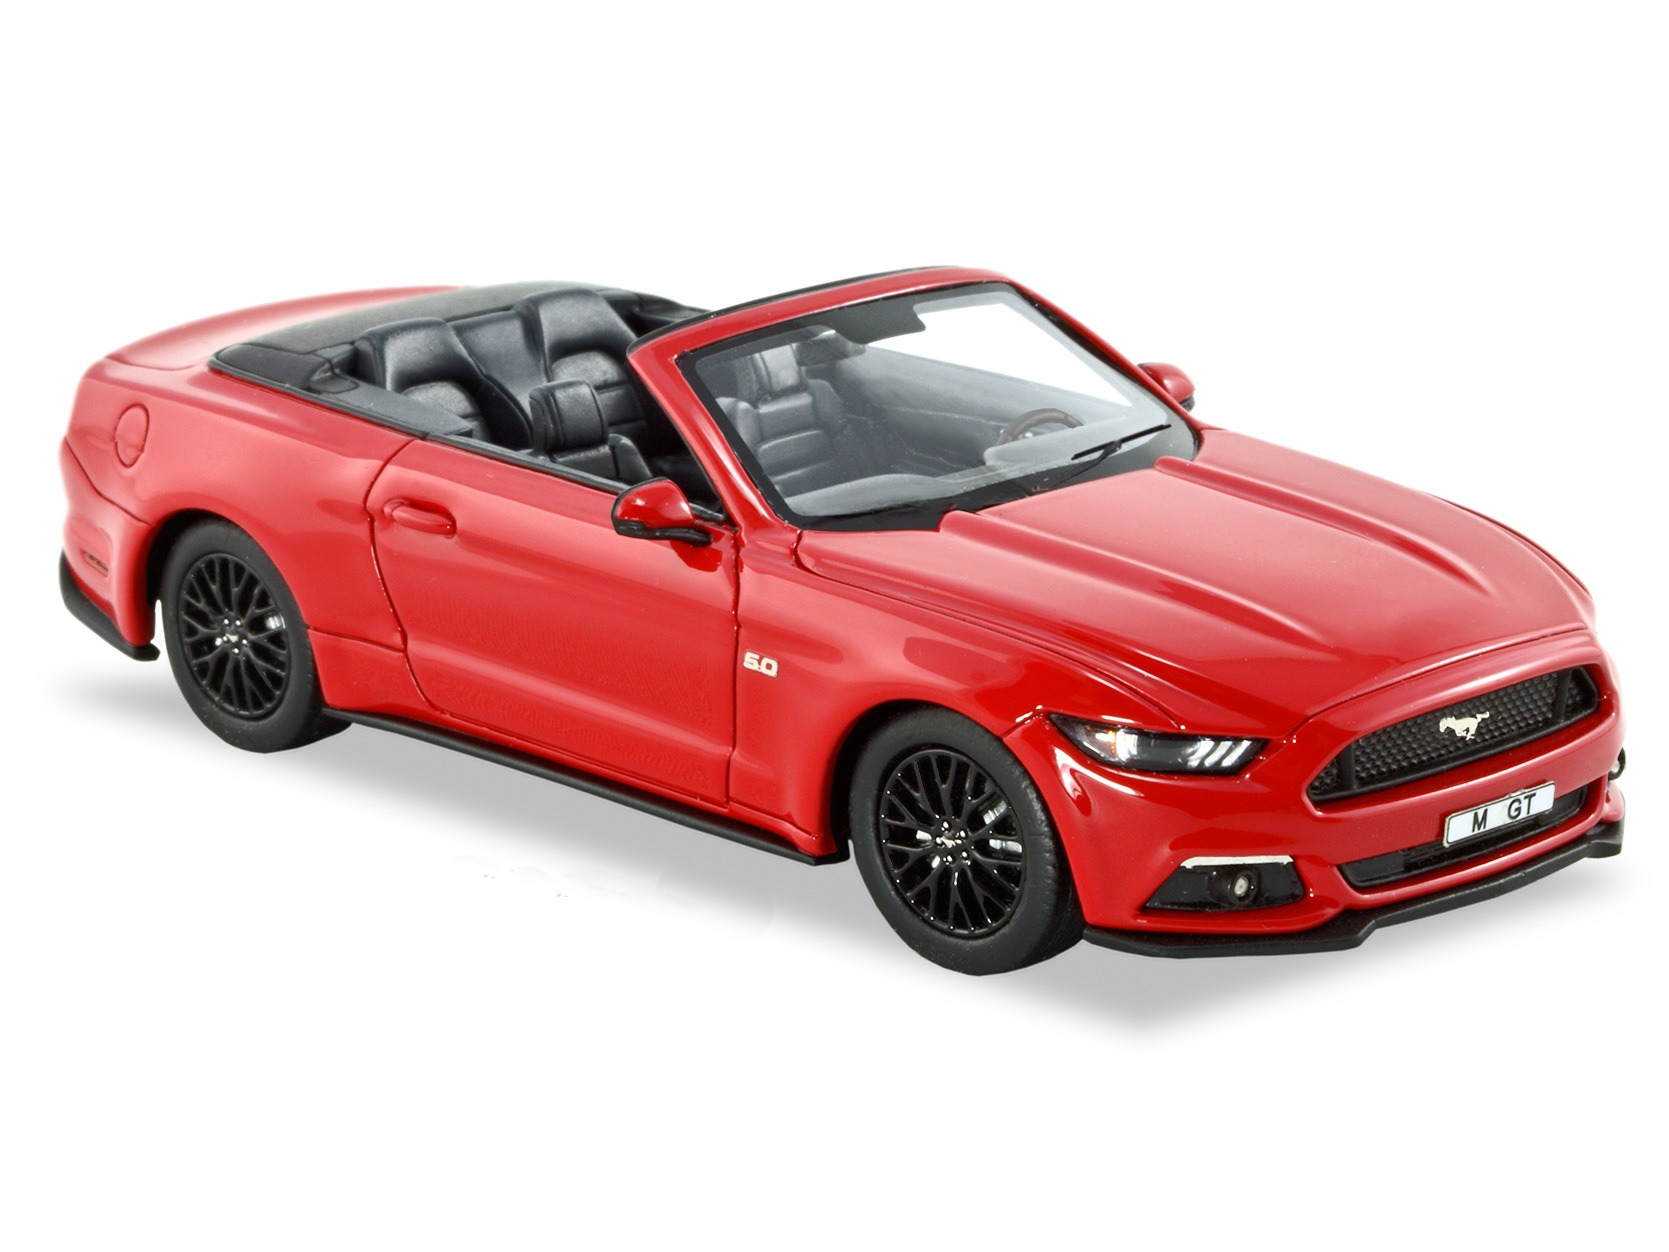 2016 Ford Mustang GT Convertible – Race Red – LHD